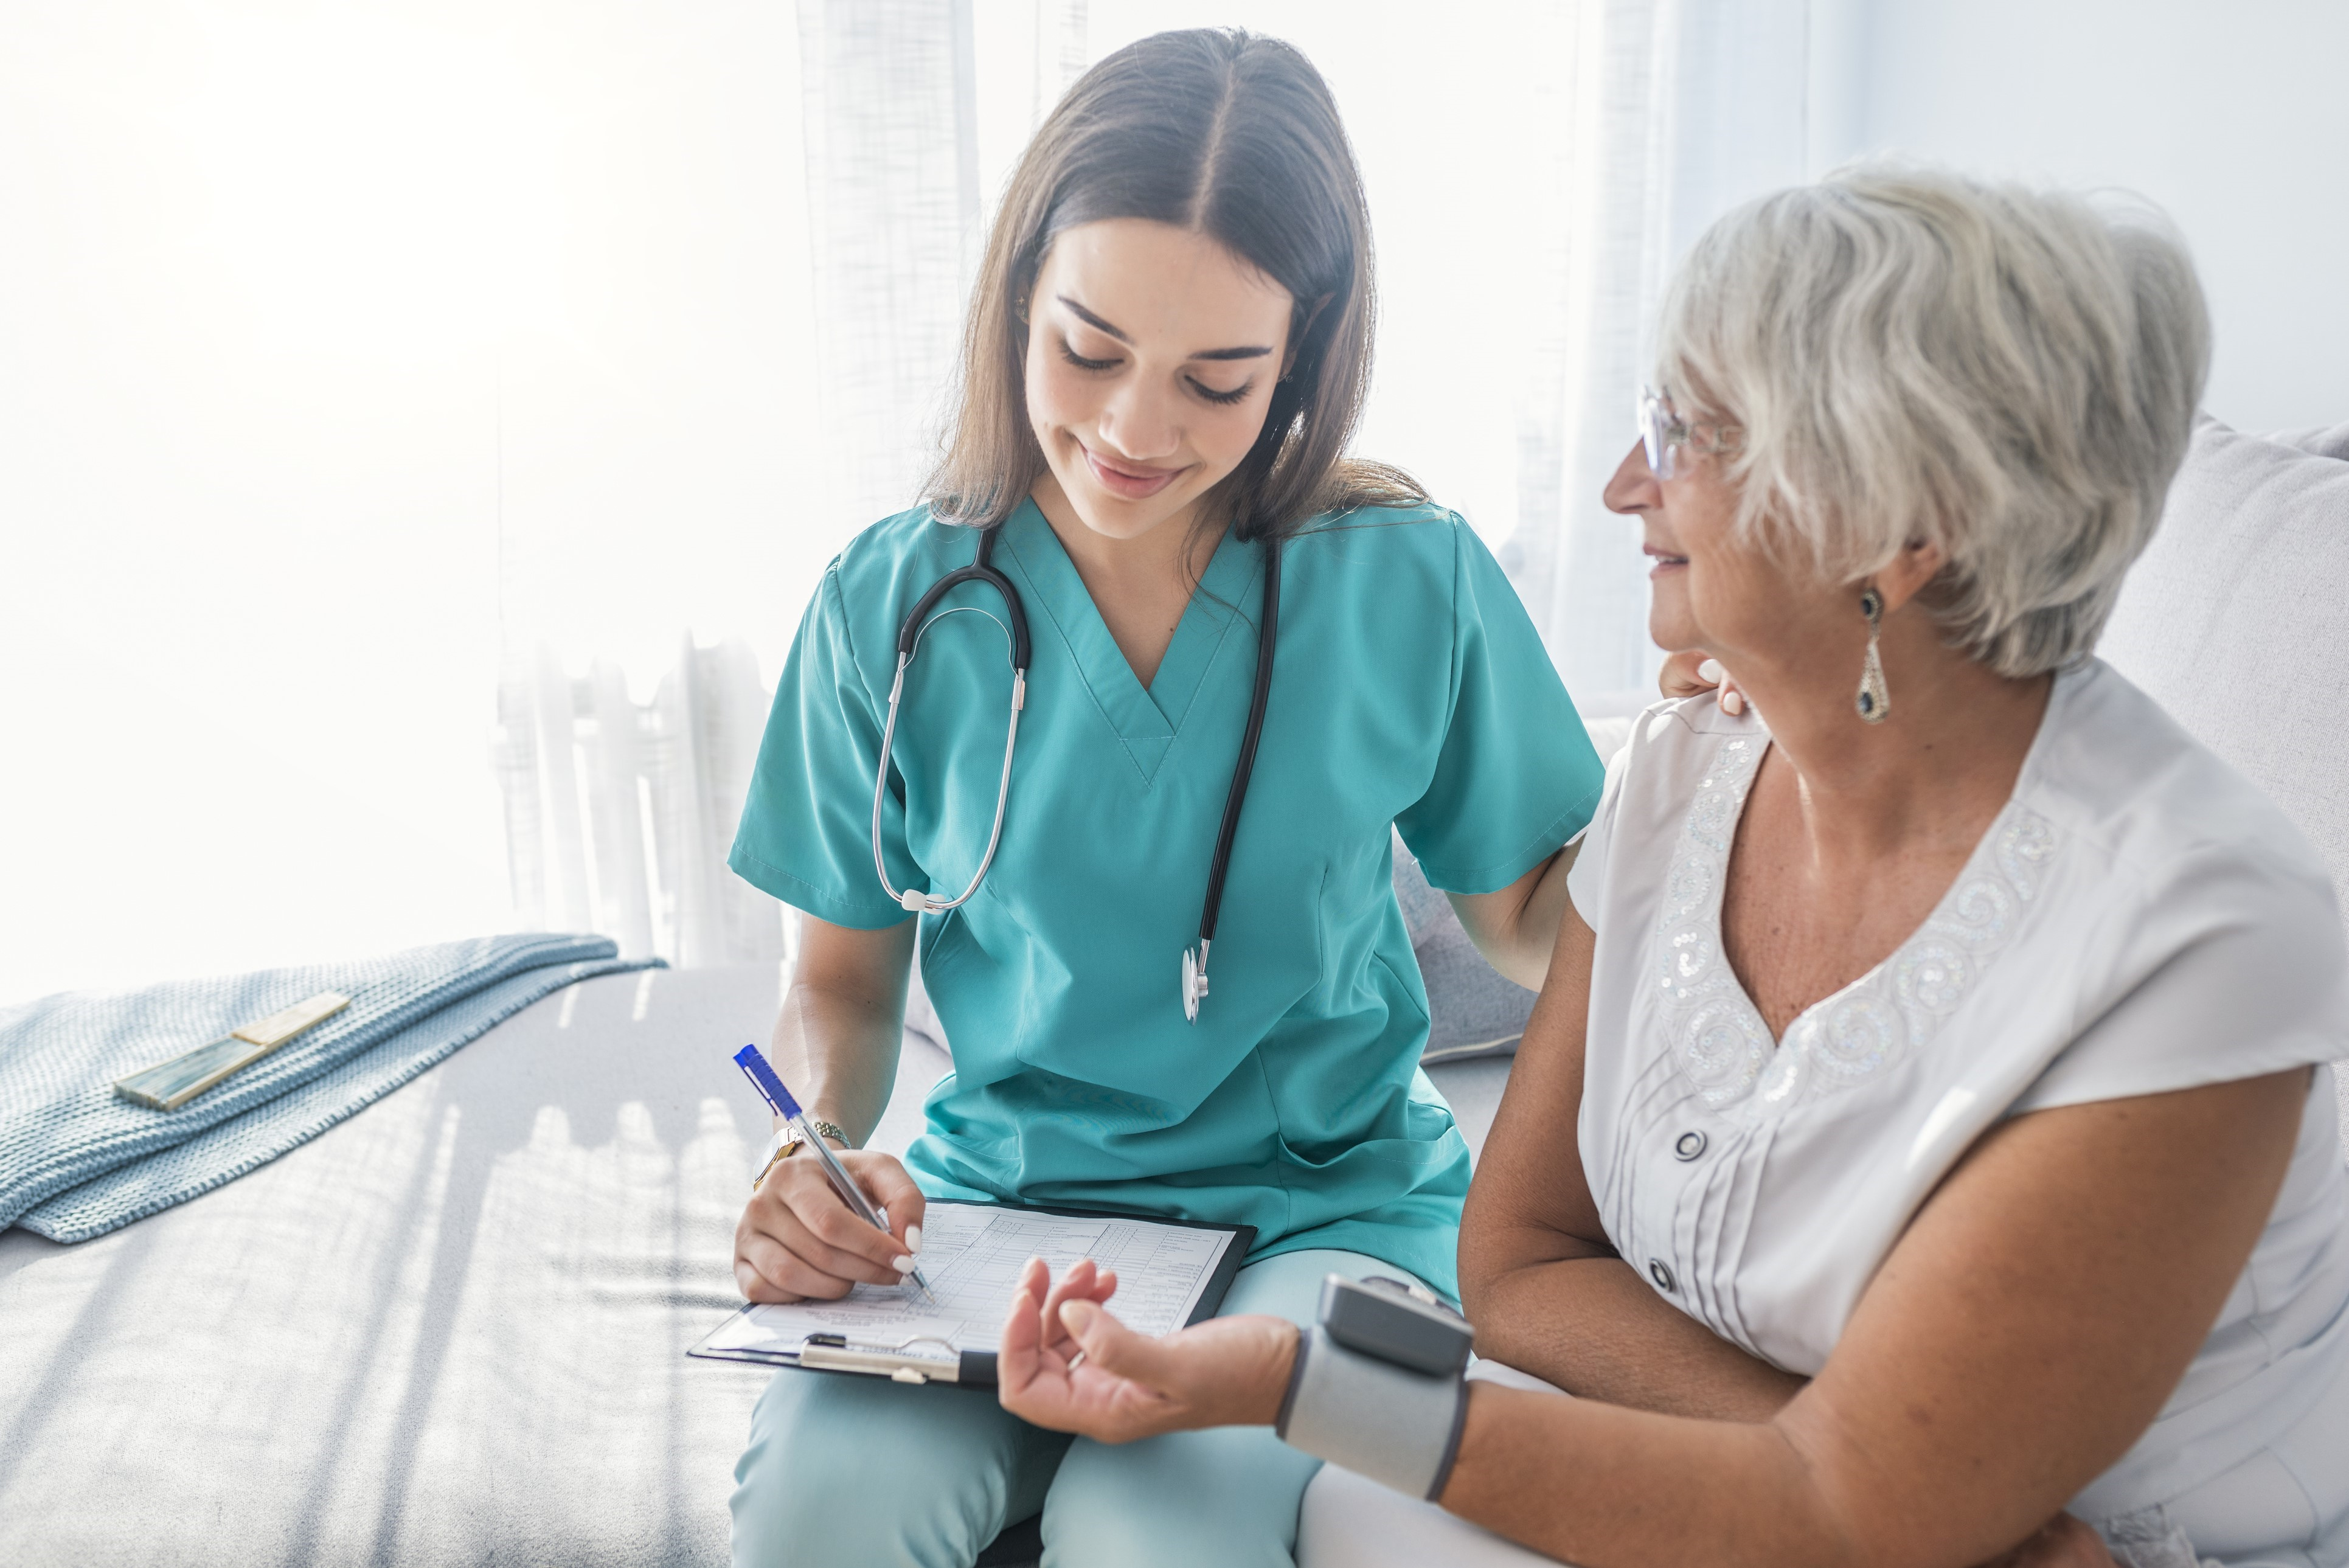 How-staffing-Levels-Affect-Patient-Experience